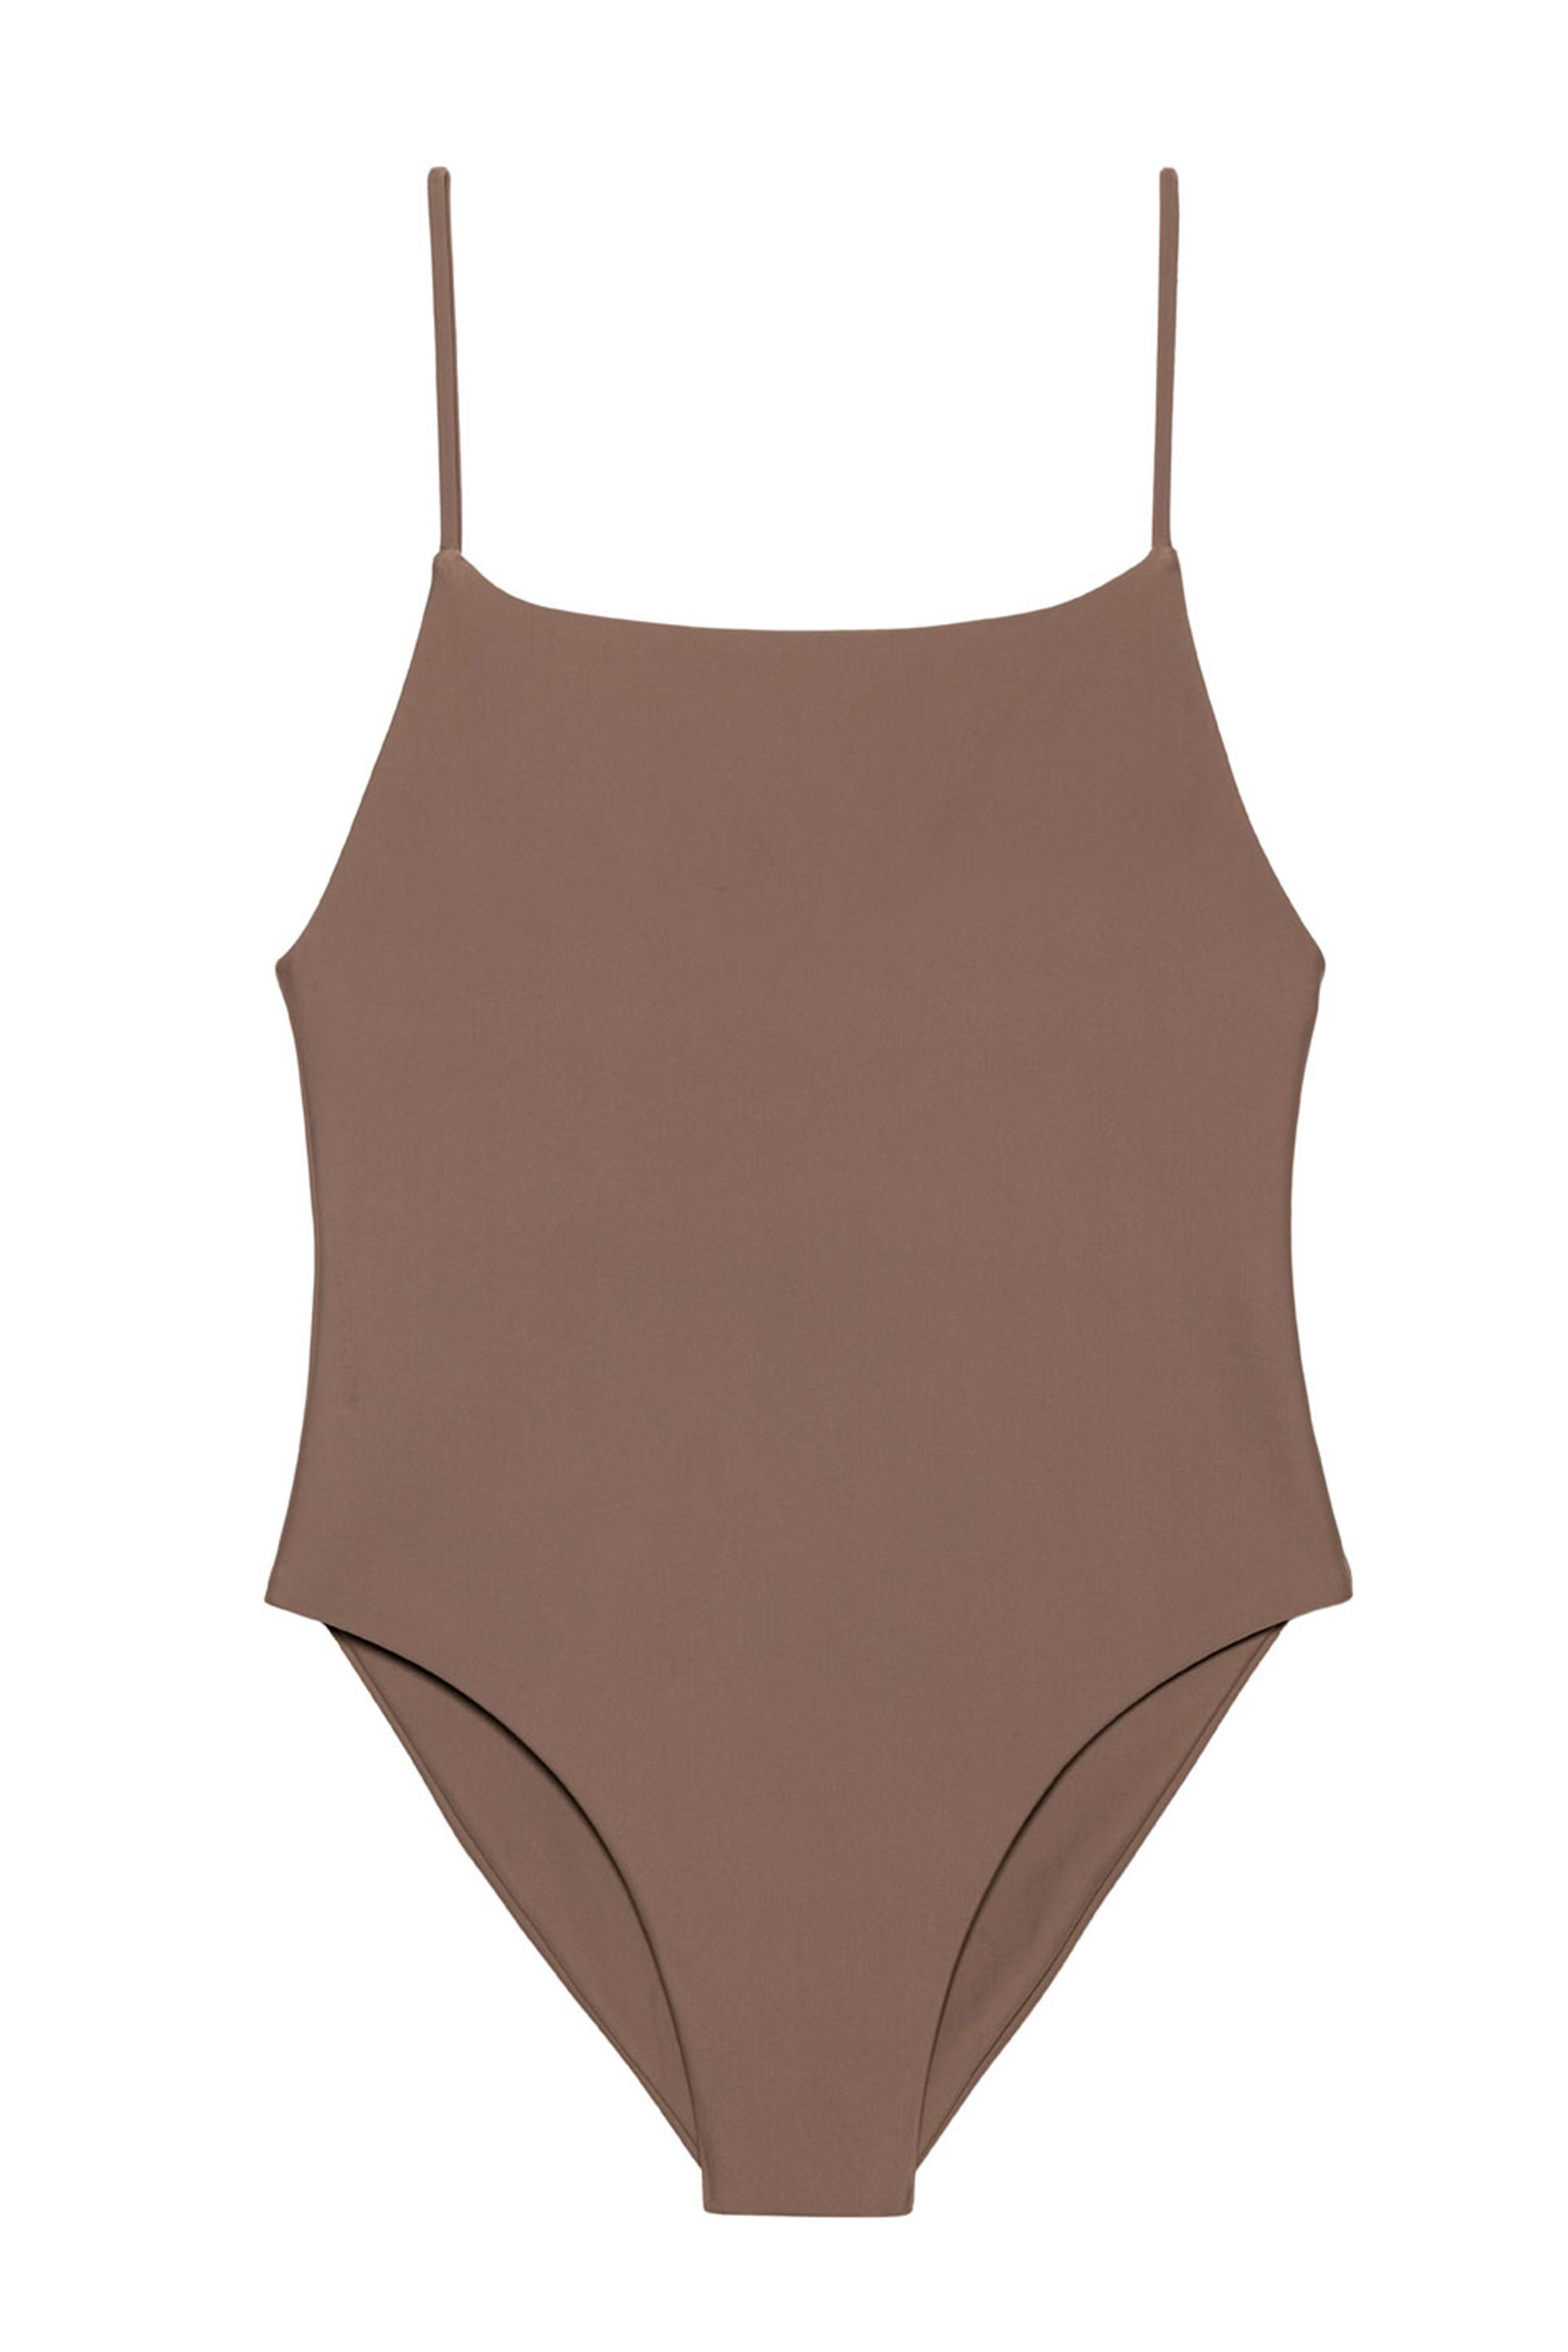 476135c1a118b 21 Best Bathing Suits For New Moms - Best Swim Suits Postpartum